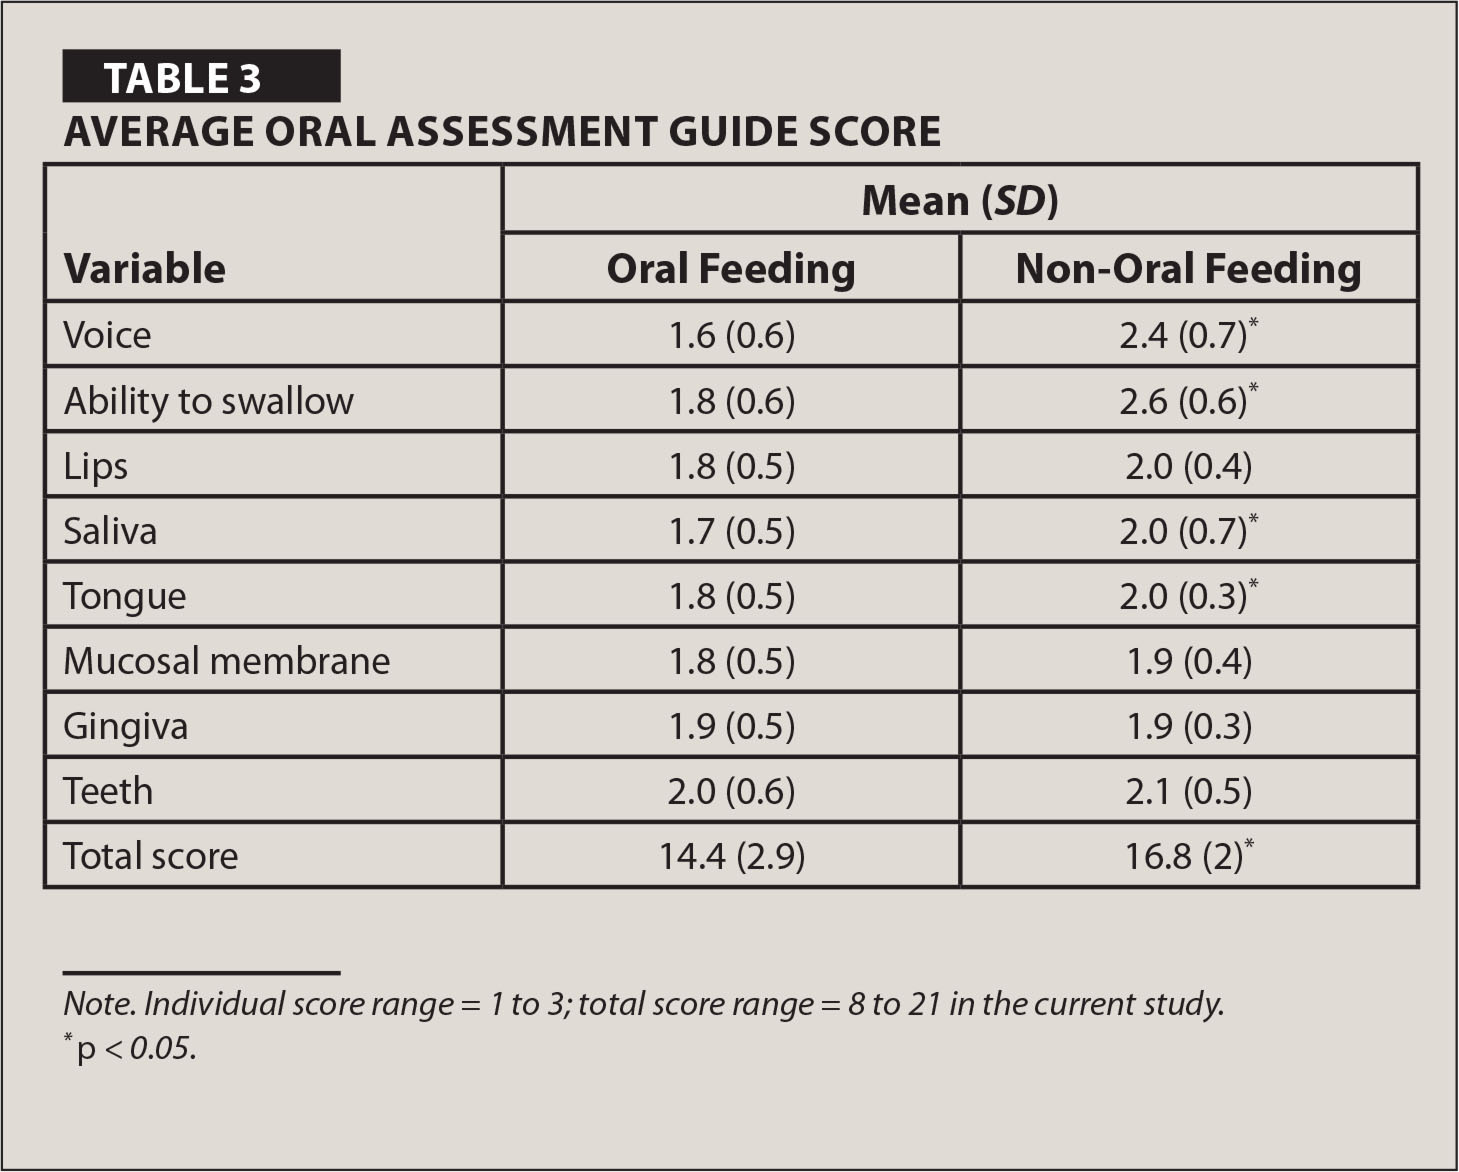 Average Oral Assessment Guide Score